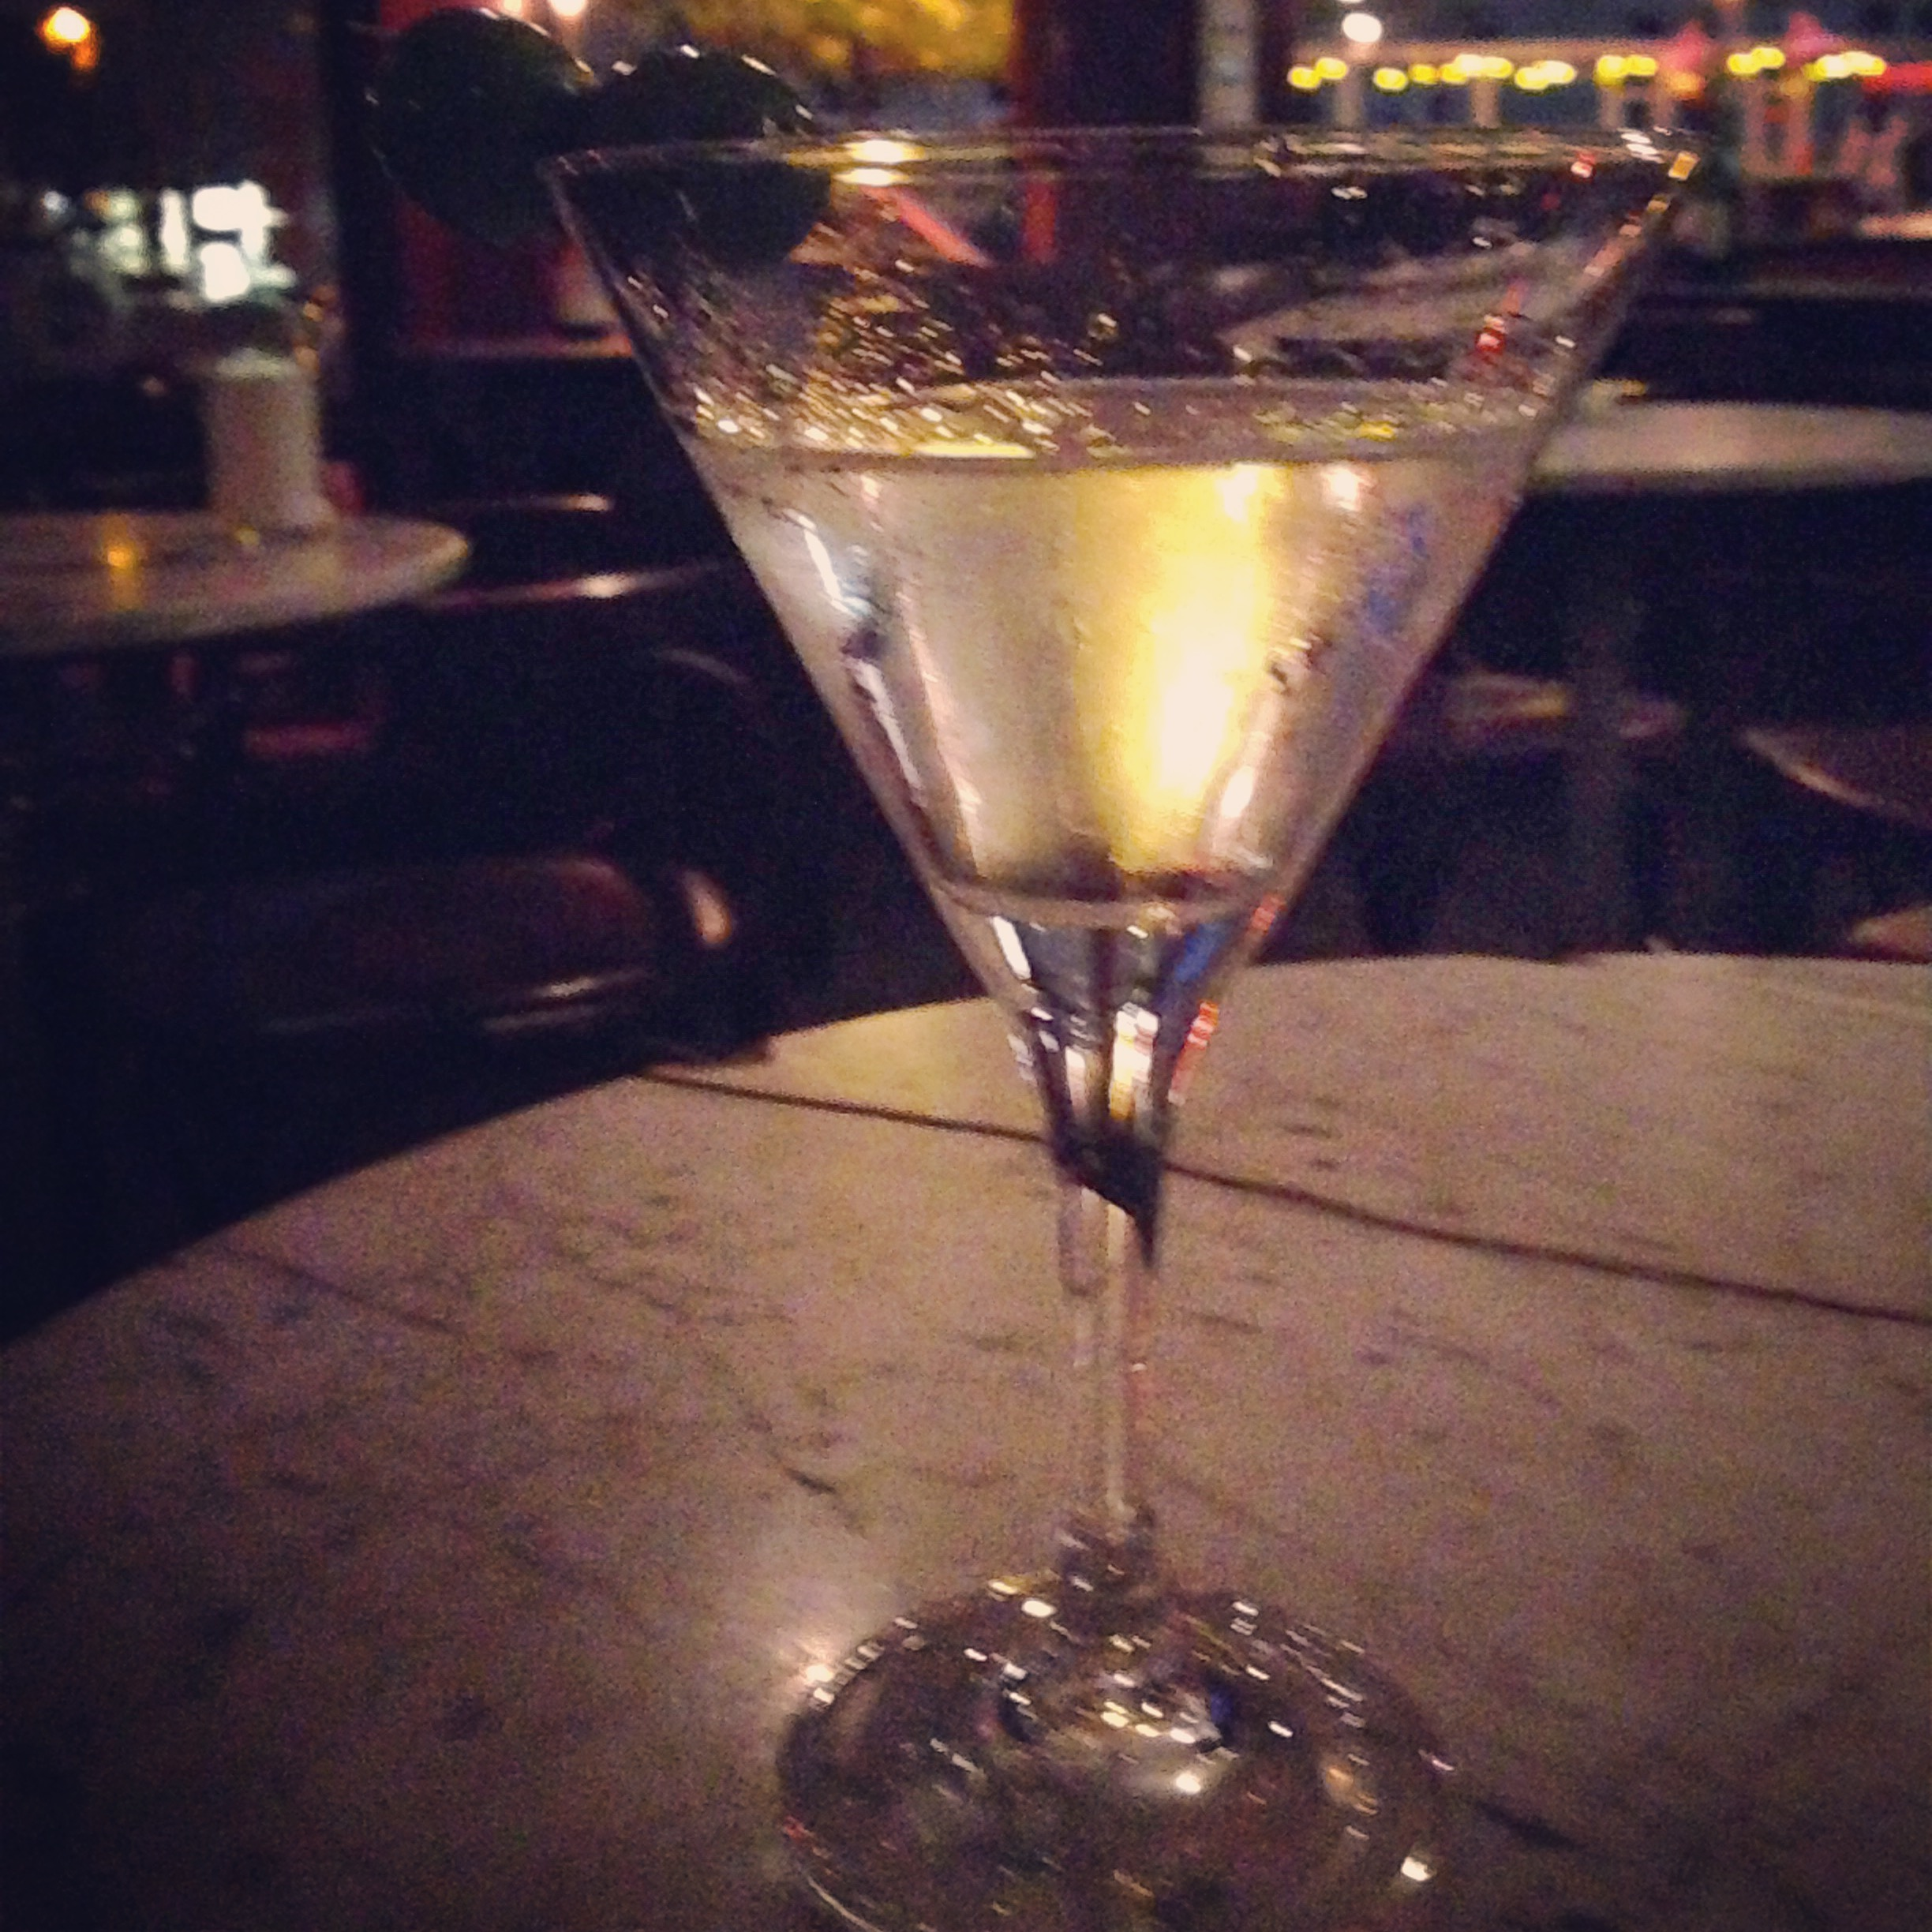 review berliner brandstifter the martini whisperer